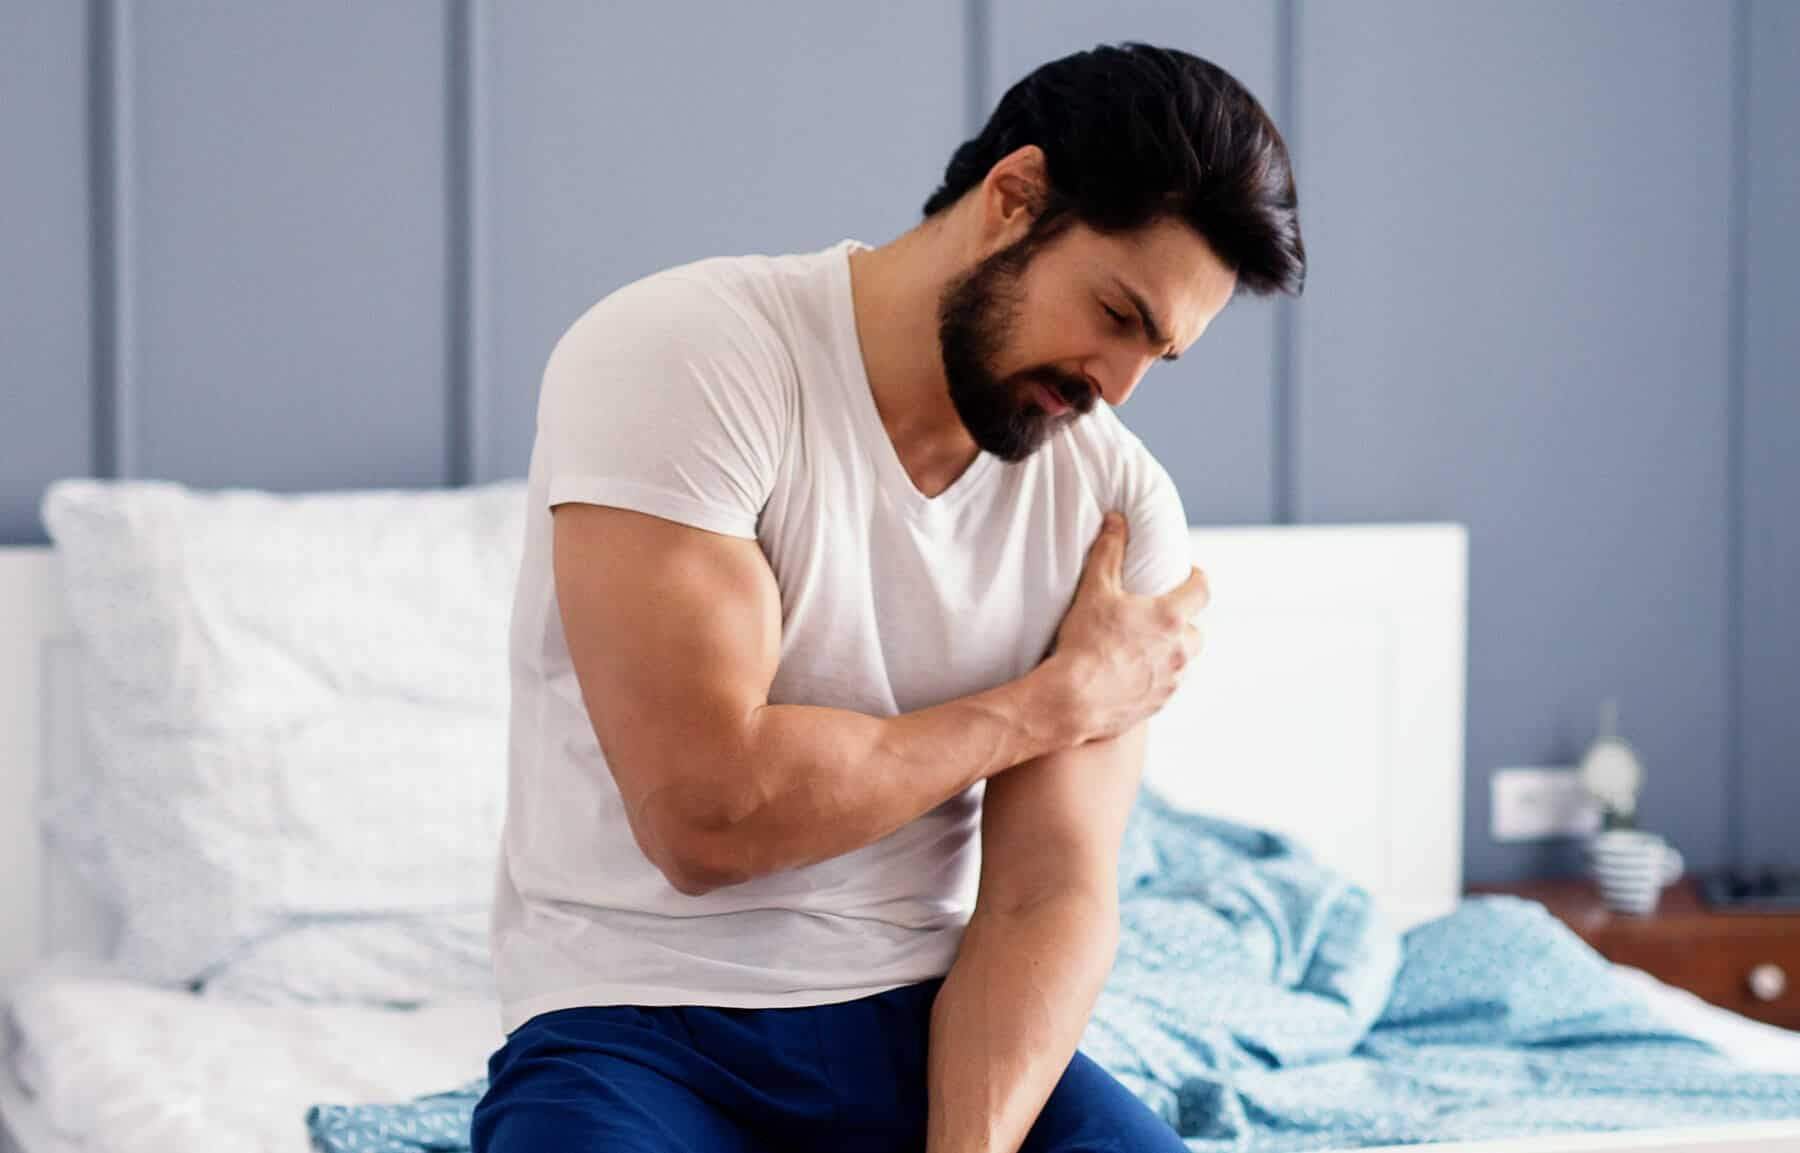 Shoulder Pain At Night: Effective Ways To Find Relief (2019)